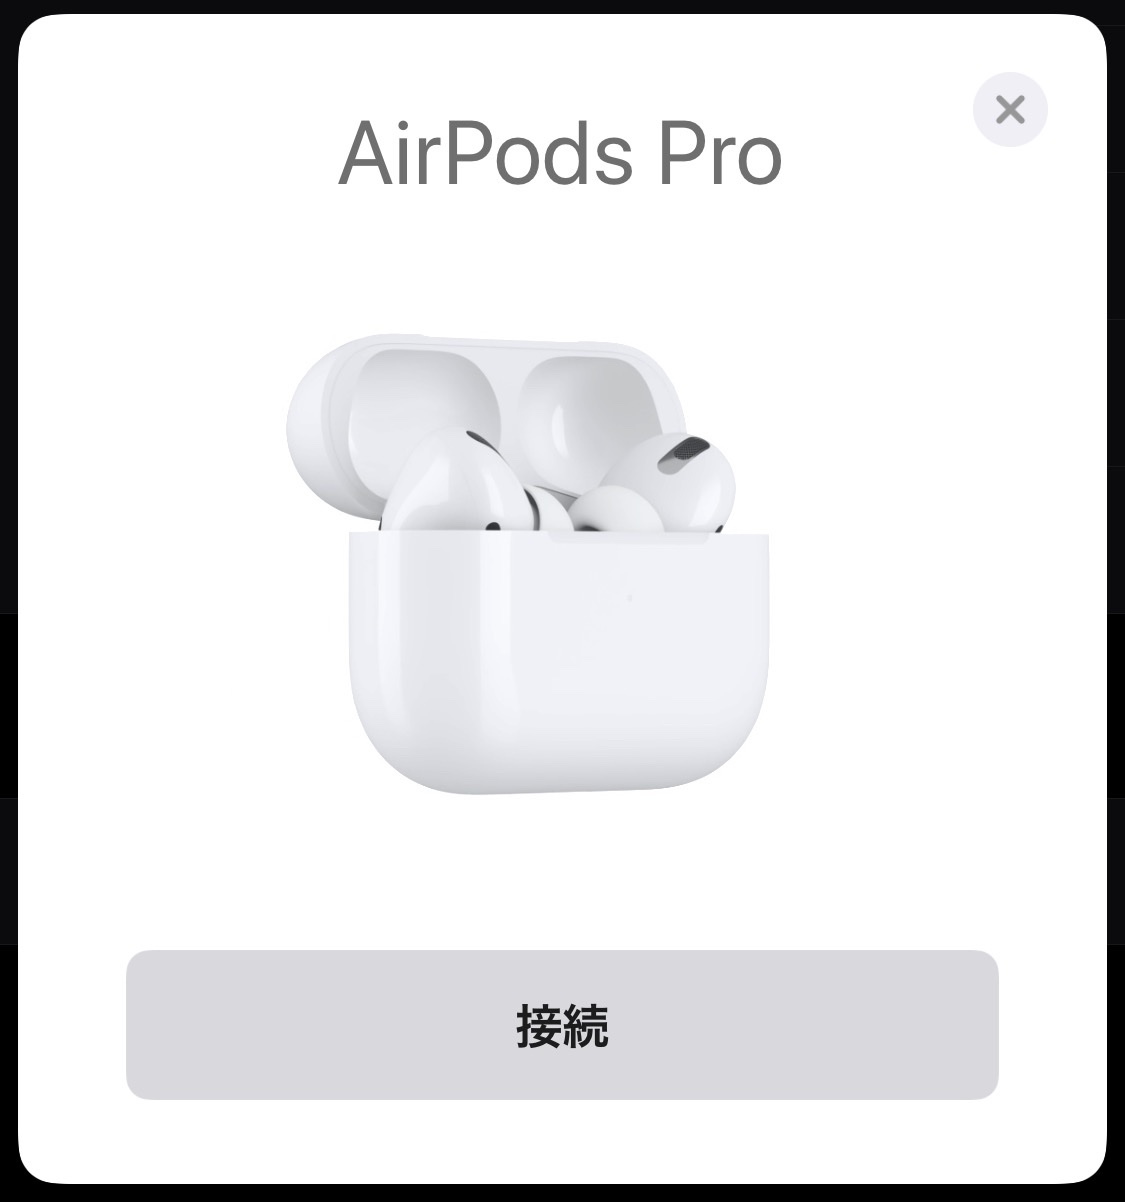 airpodspro 音飛びしない